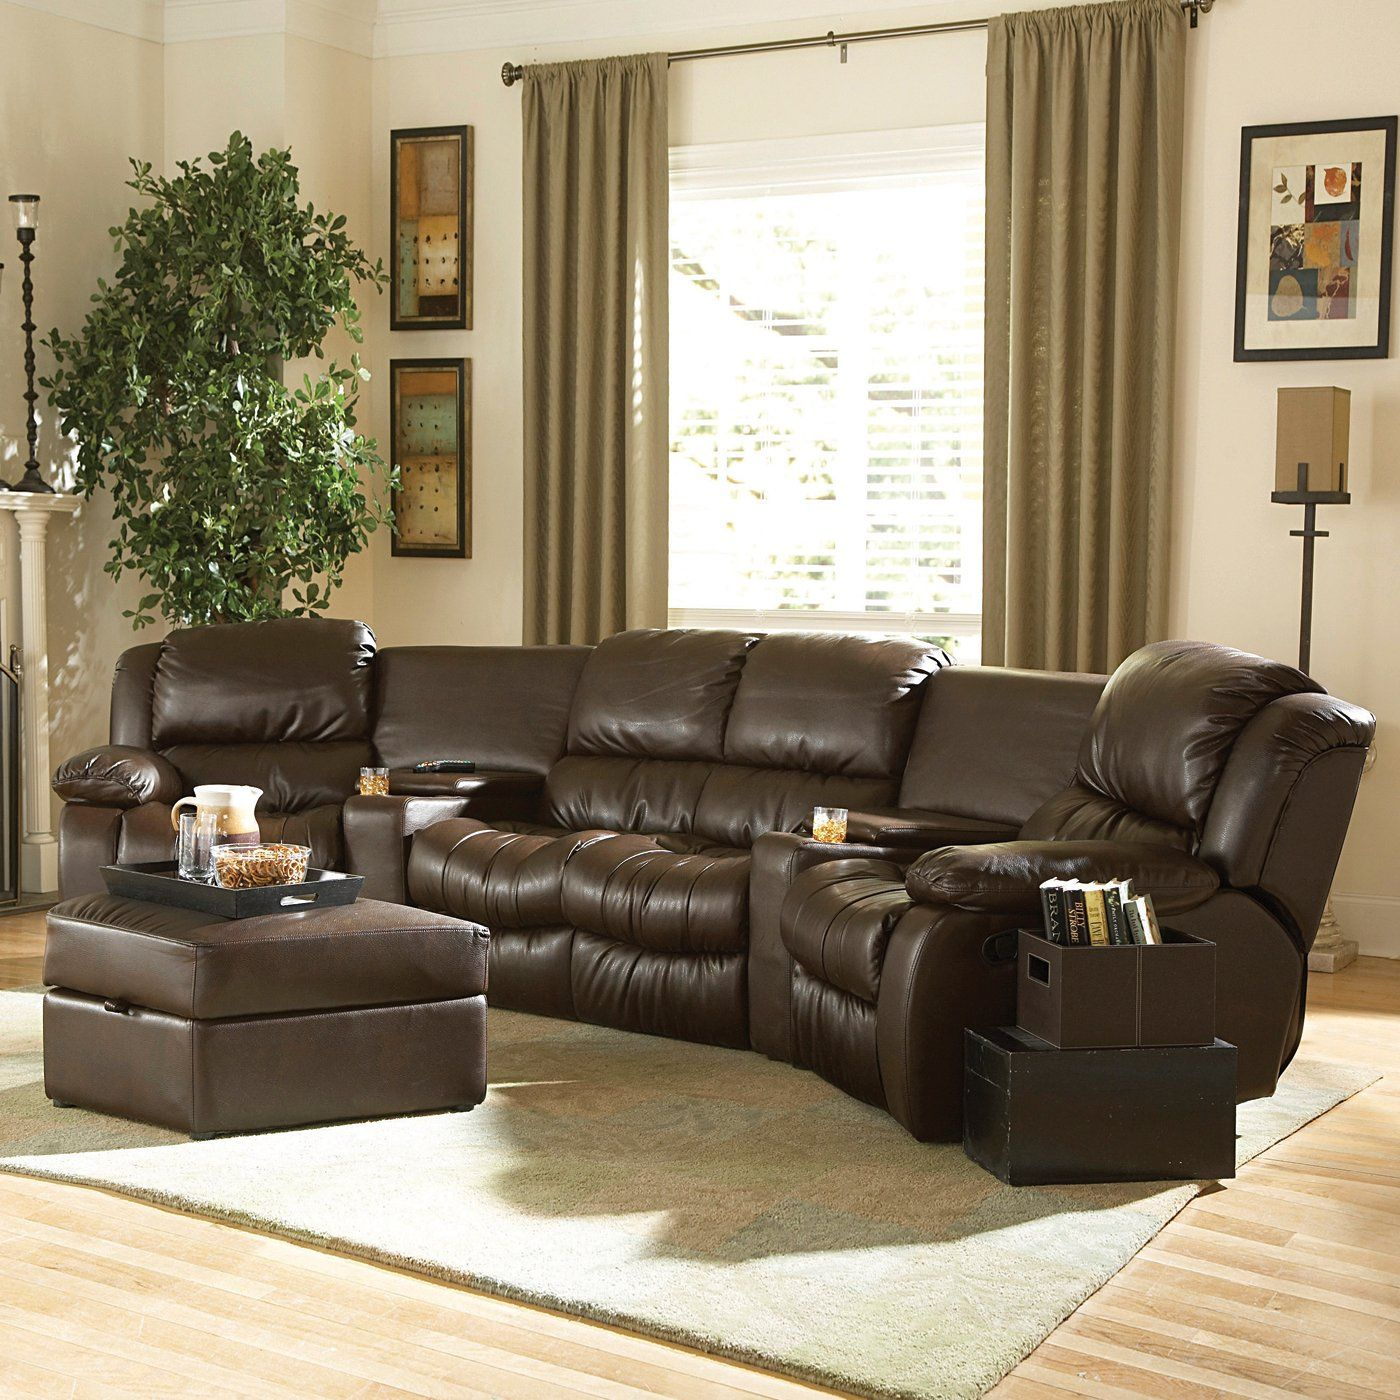 $2335 2 piece Everett Bonded Leather Sectional Sofa Set by